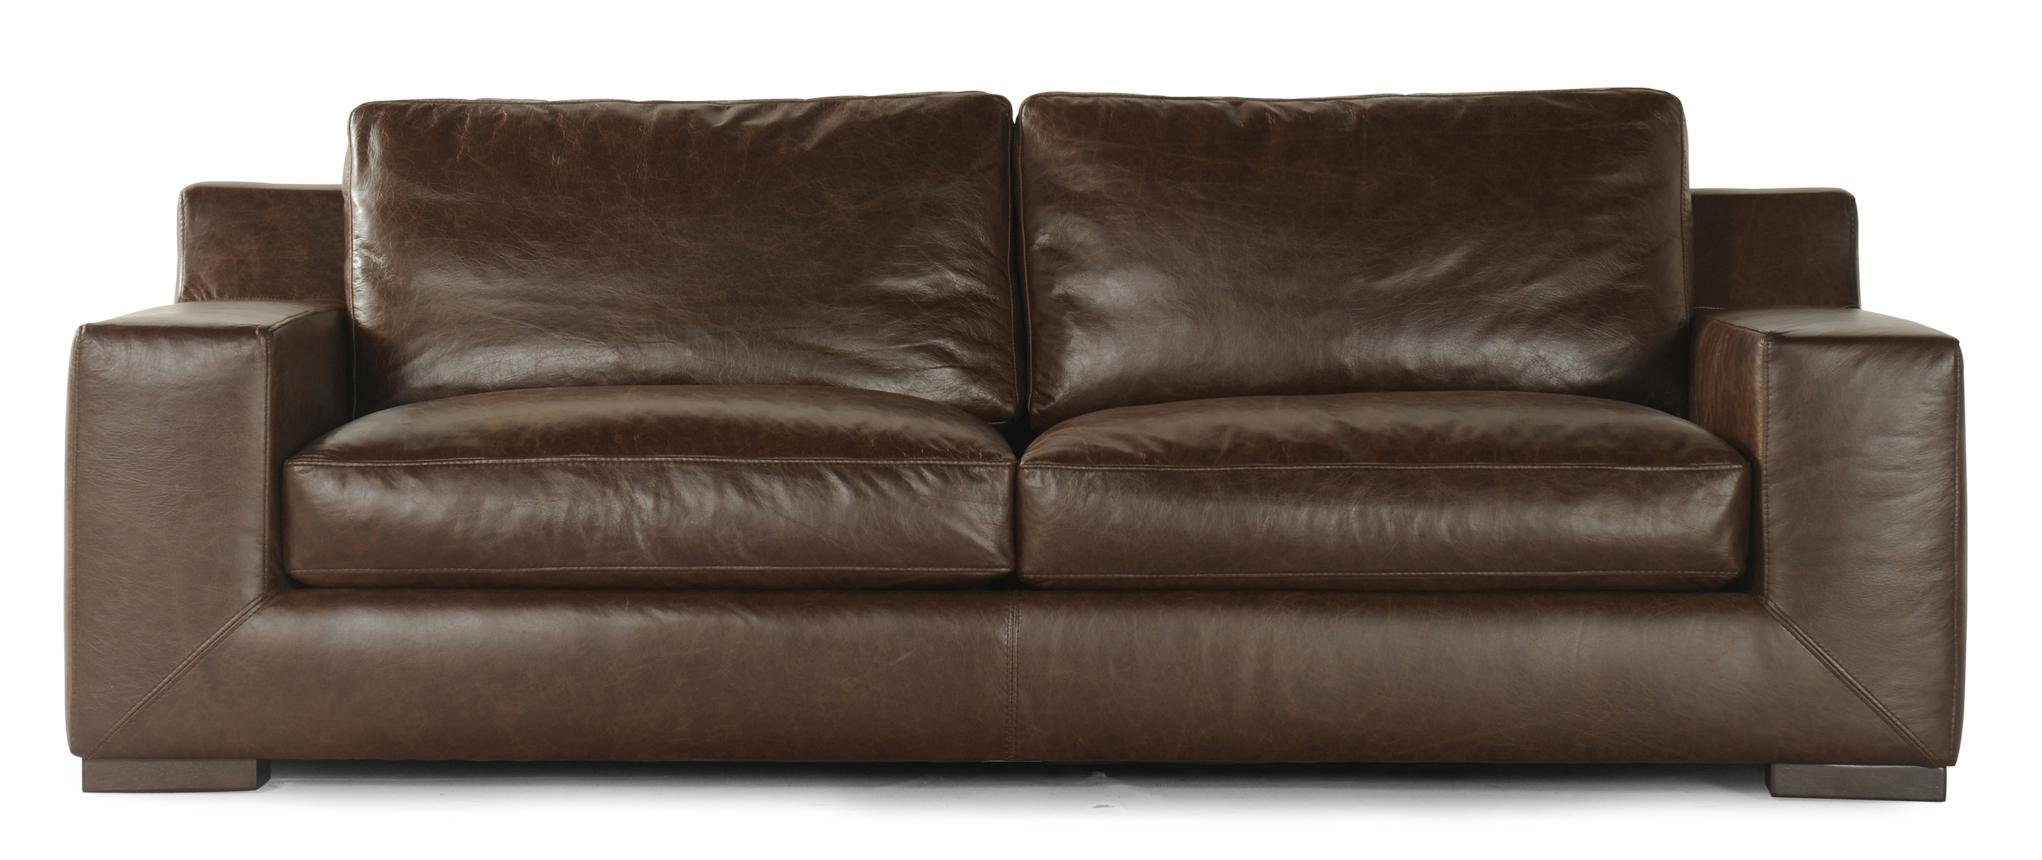 Violino 3531 Leather Sofa With Track Arms And Short Block Feet